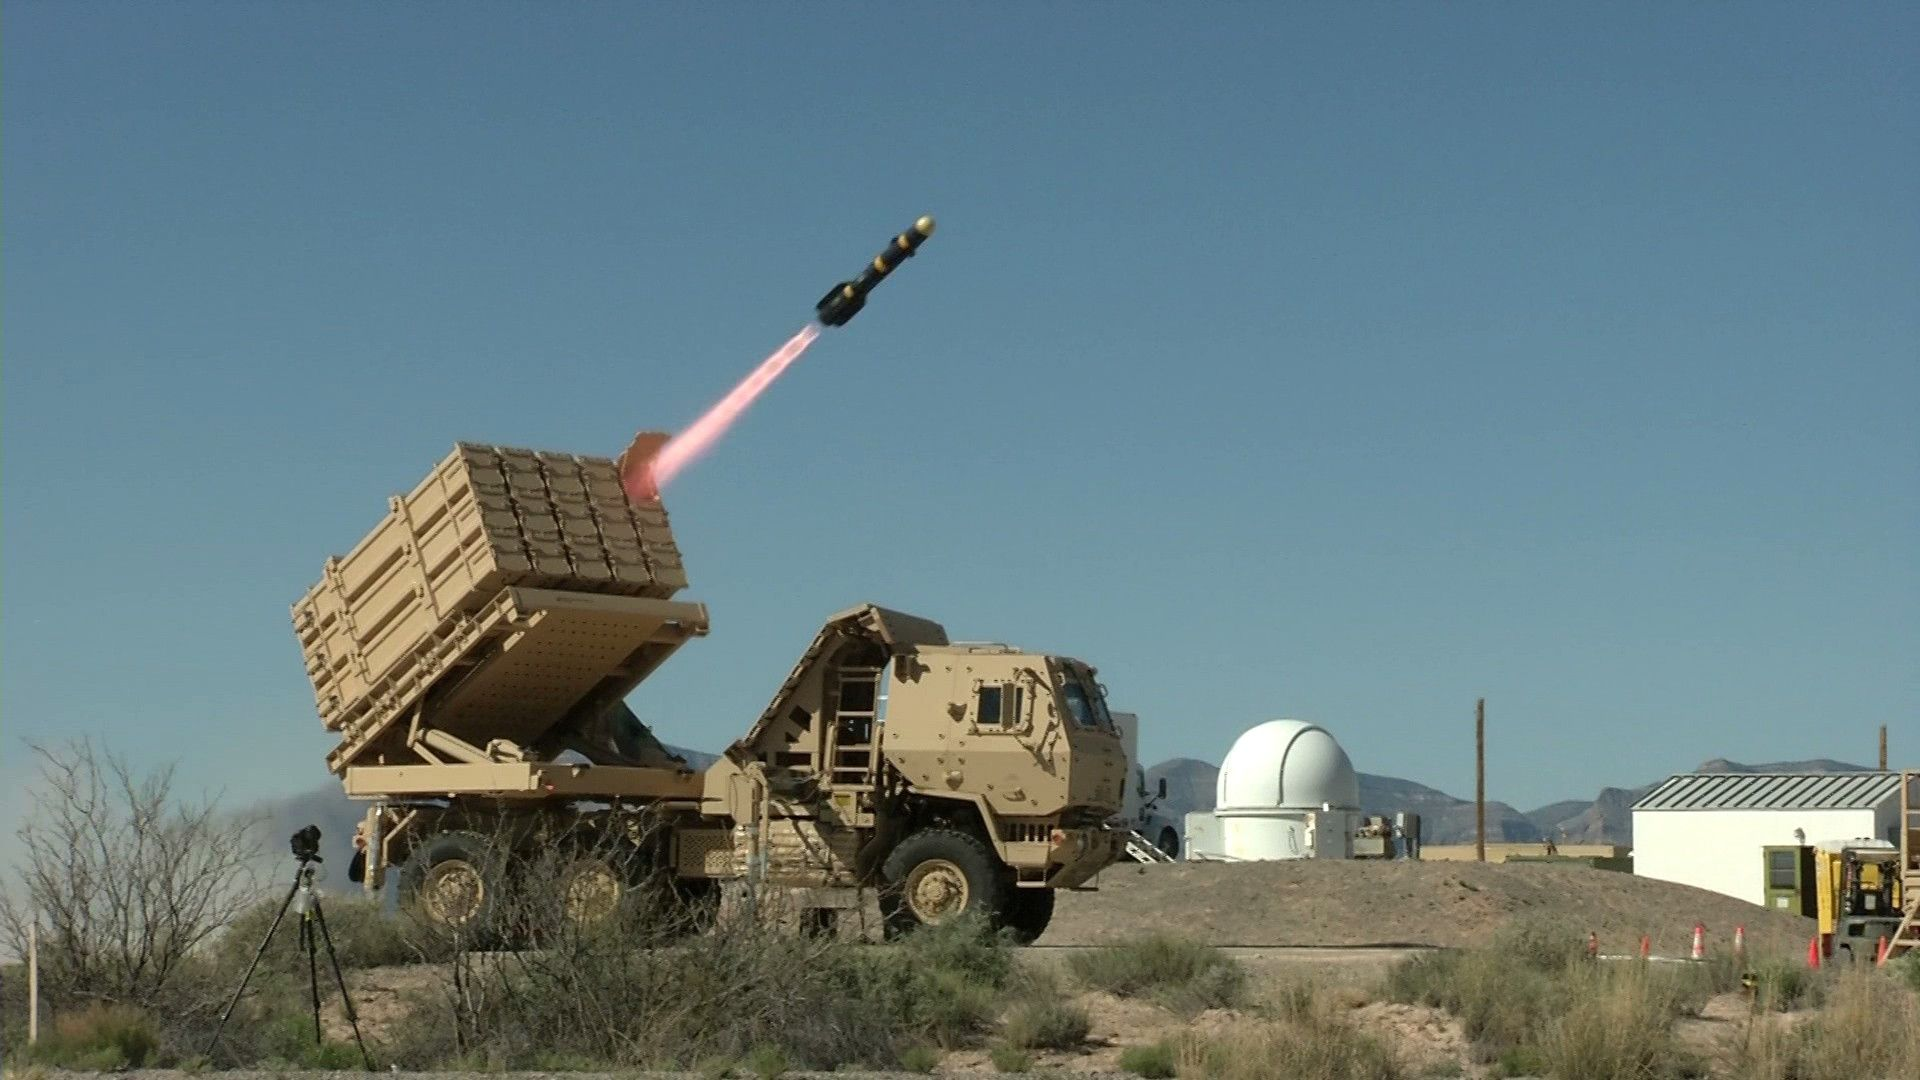 US Army tested new Low-Cost Air Defense system designed against UAV